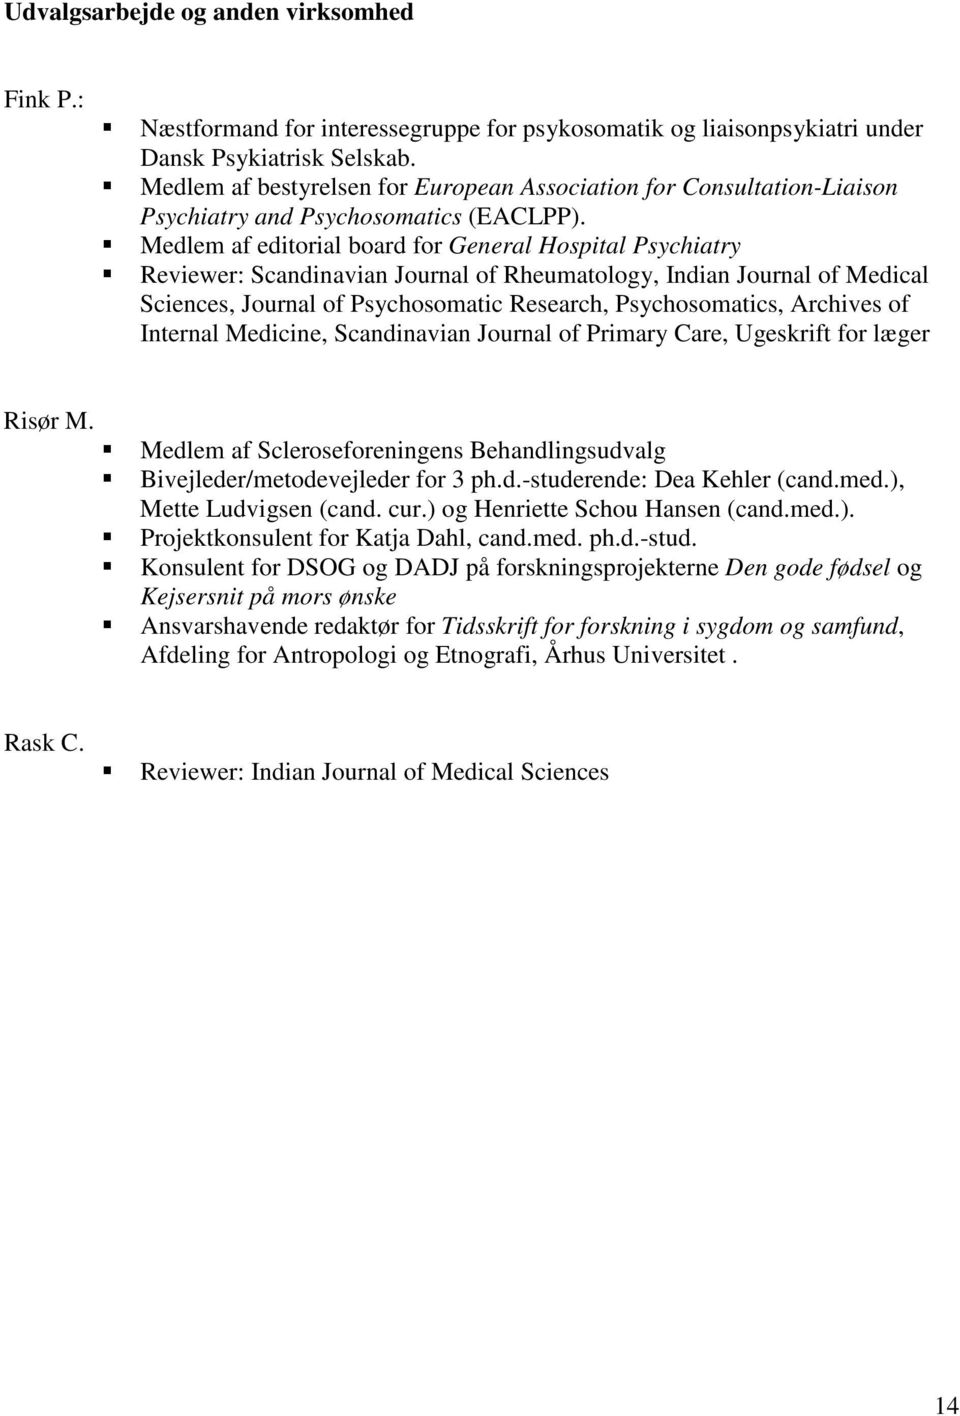 Medlem af editorial board for General Hospital Psychiatry Reviewer: Scandinavian Journal of Rheumatology, Indian Journal of Medical Sciences, Journal of Psychosomatic Research, Psychosomatics,